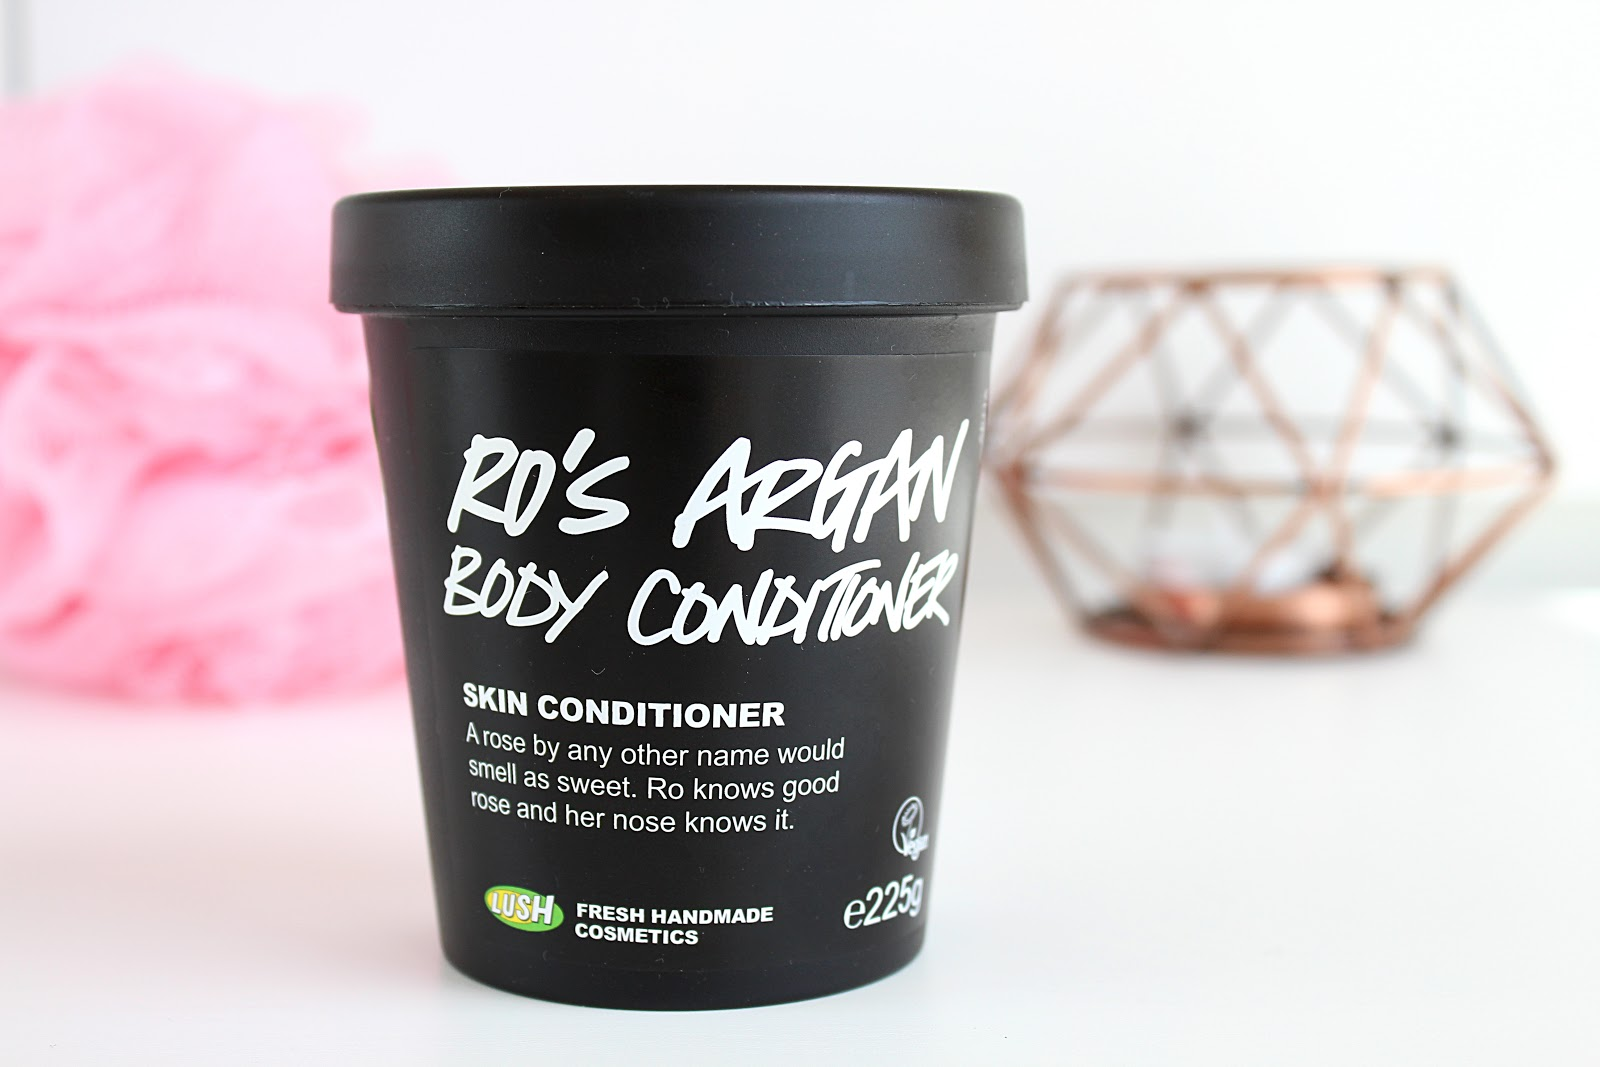 LUSH Ro's Argan Body Conditioner Review, Life in Excess Blog